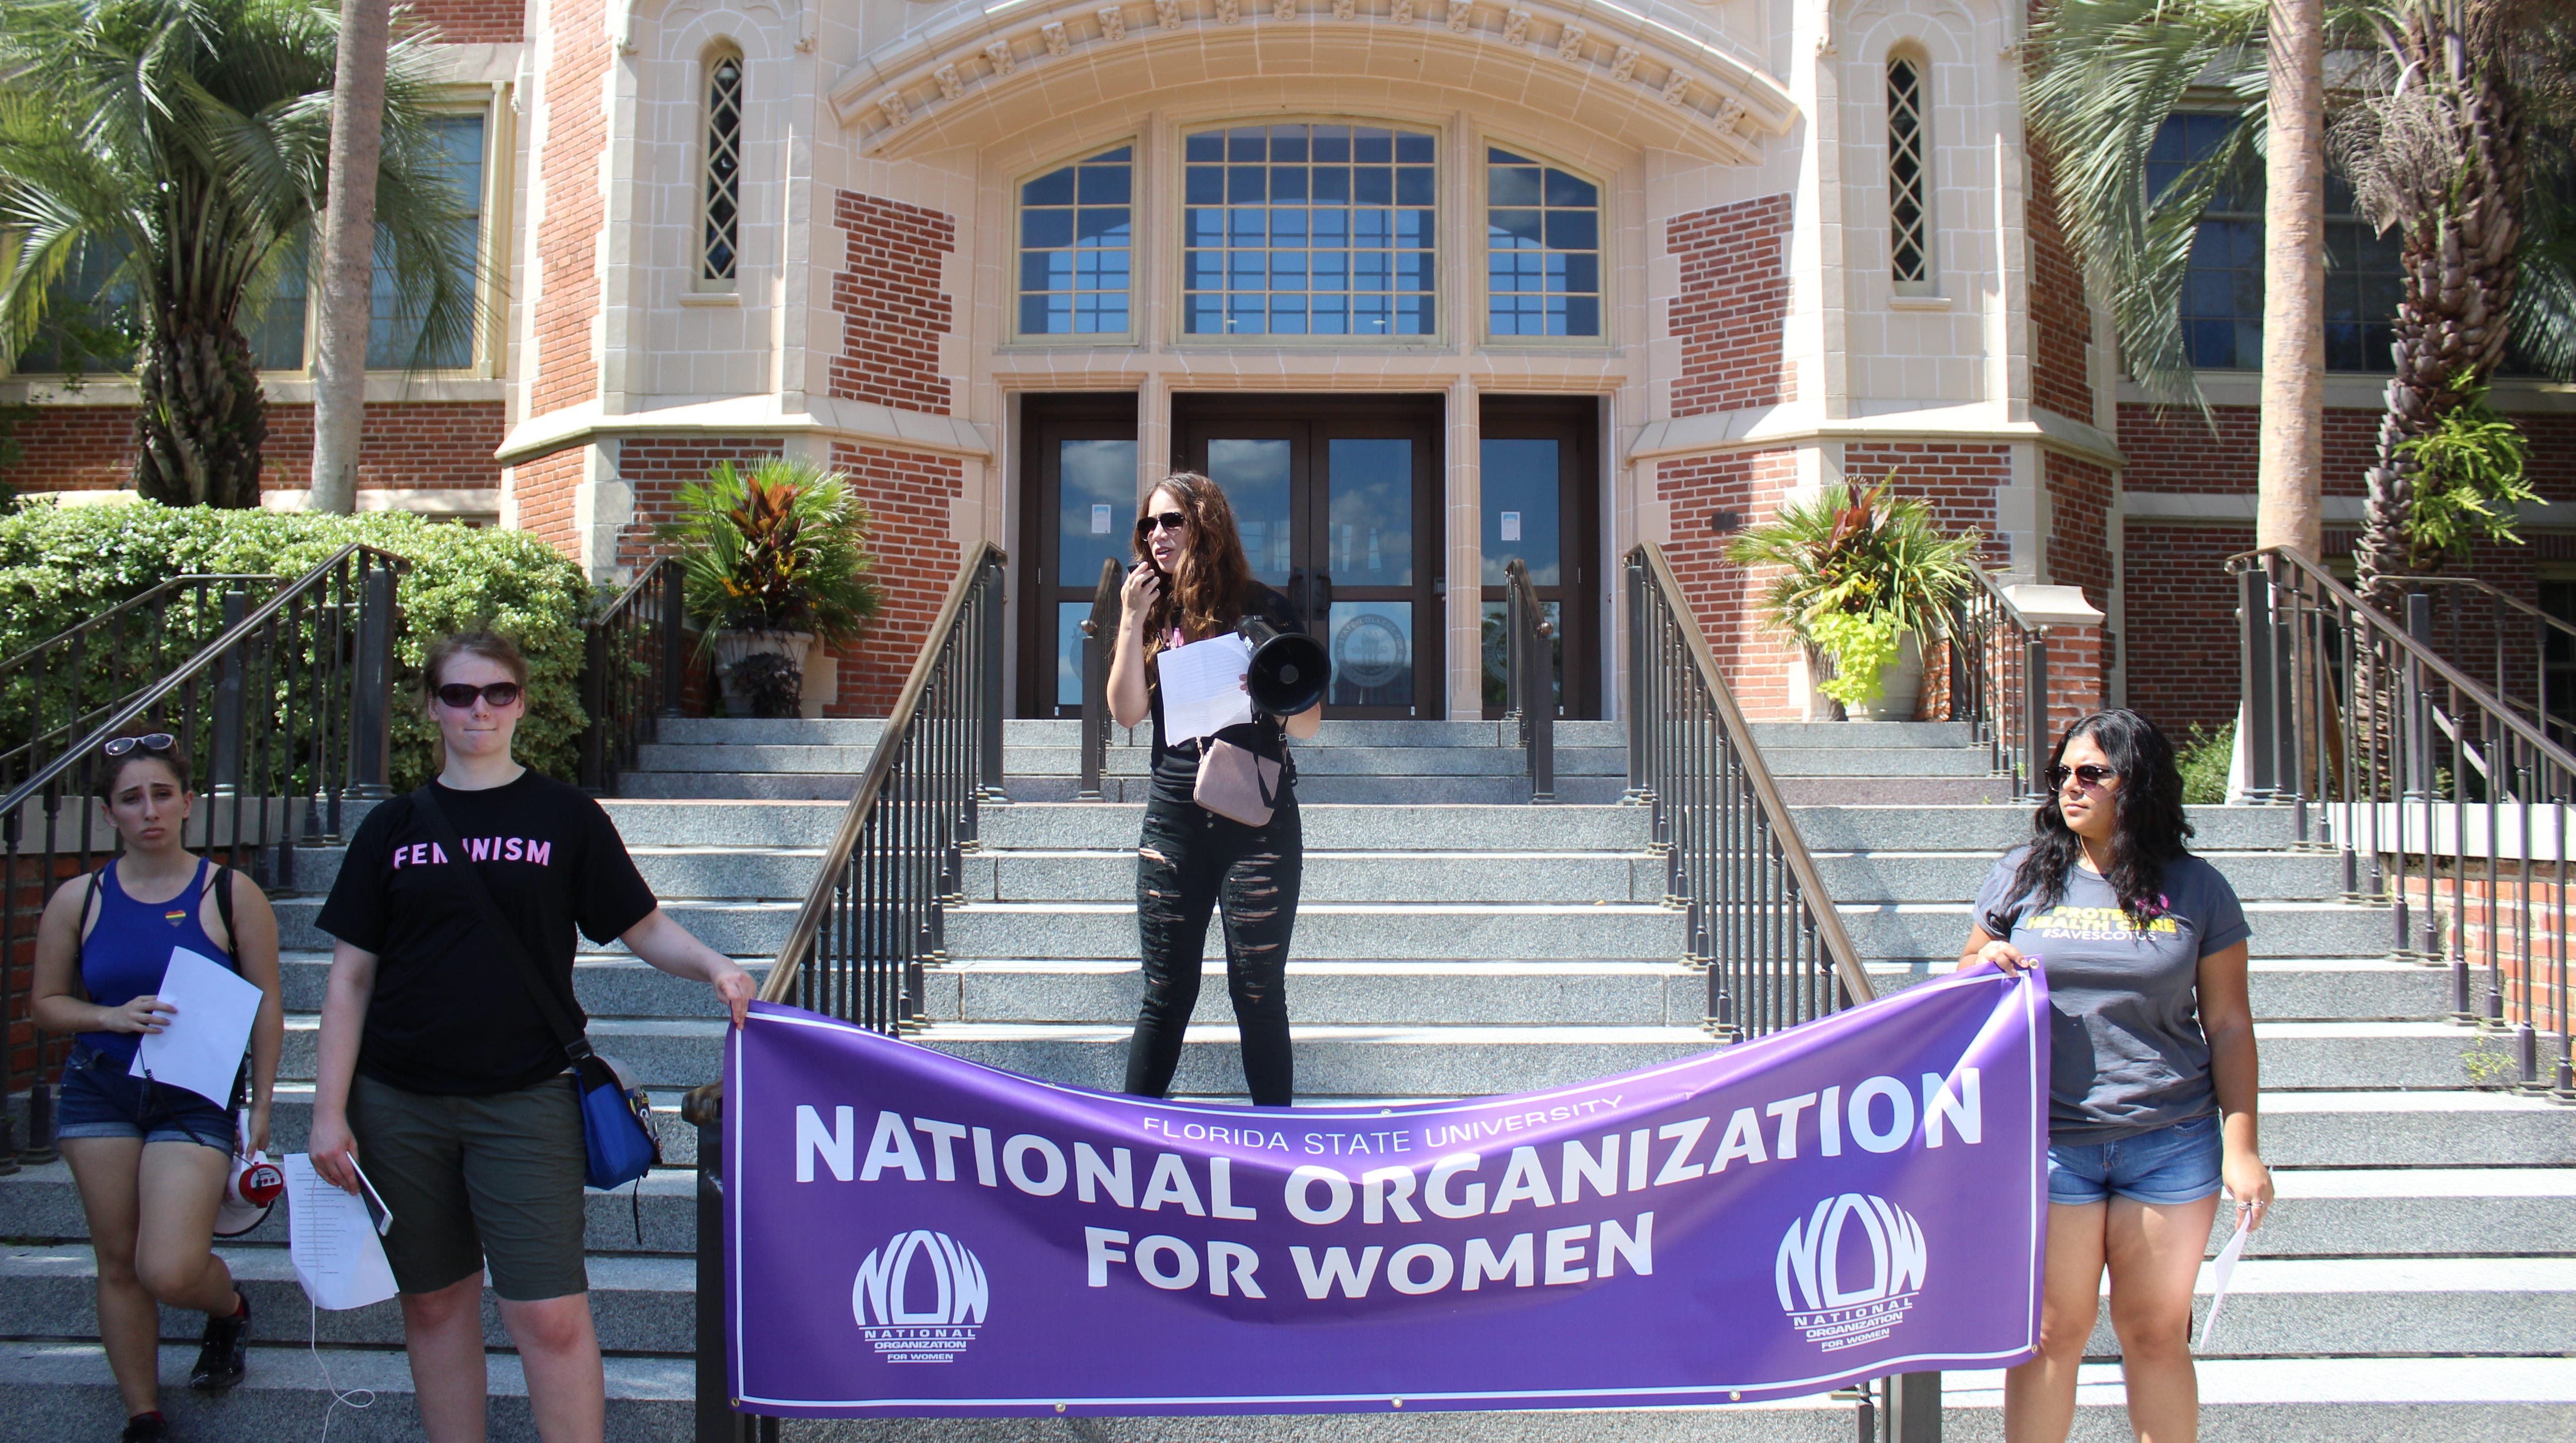 Member of the National Organization for Women hold a banner in front of the Westcott before leading the march to the Capitol.